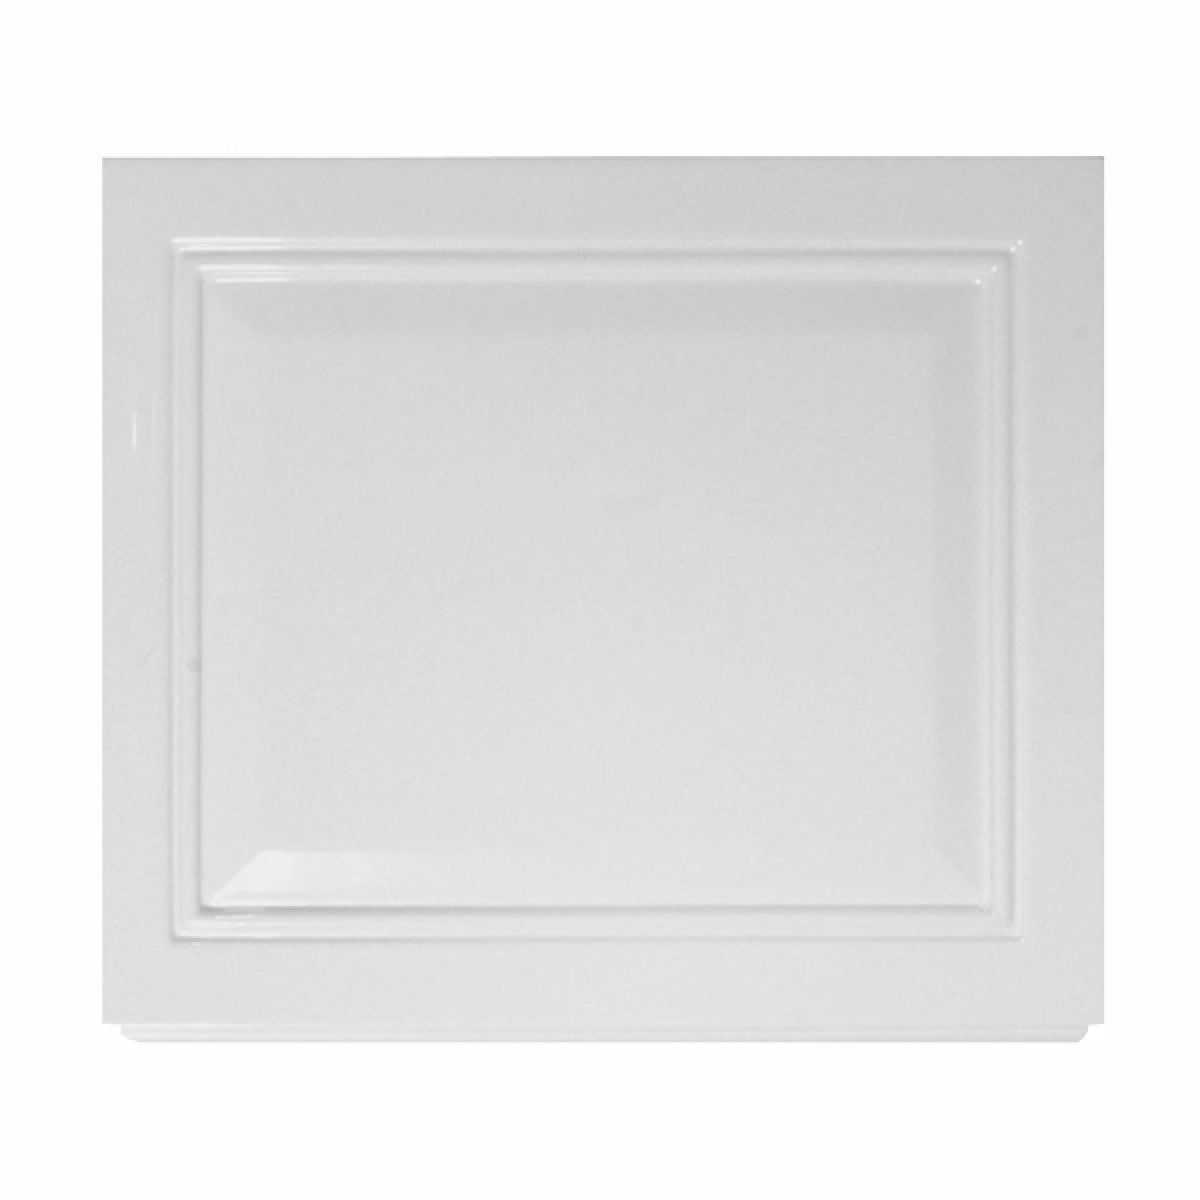 Frontline Tudor White Bath End Panel 750mm